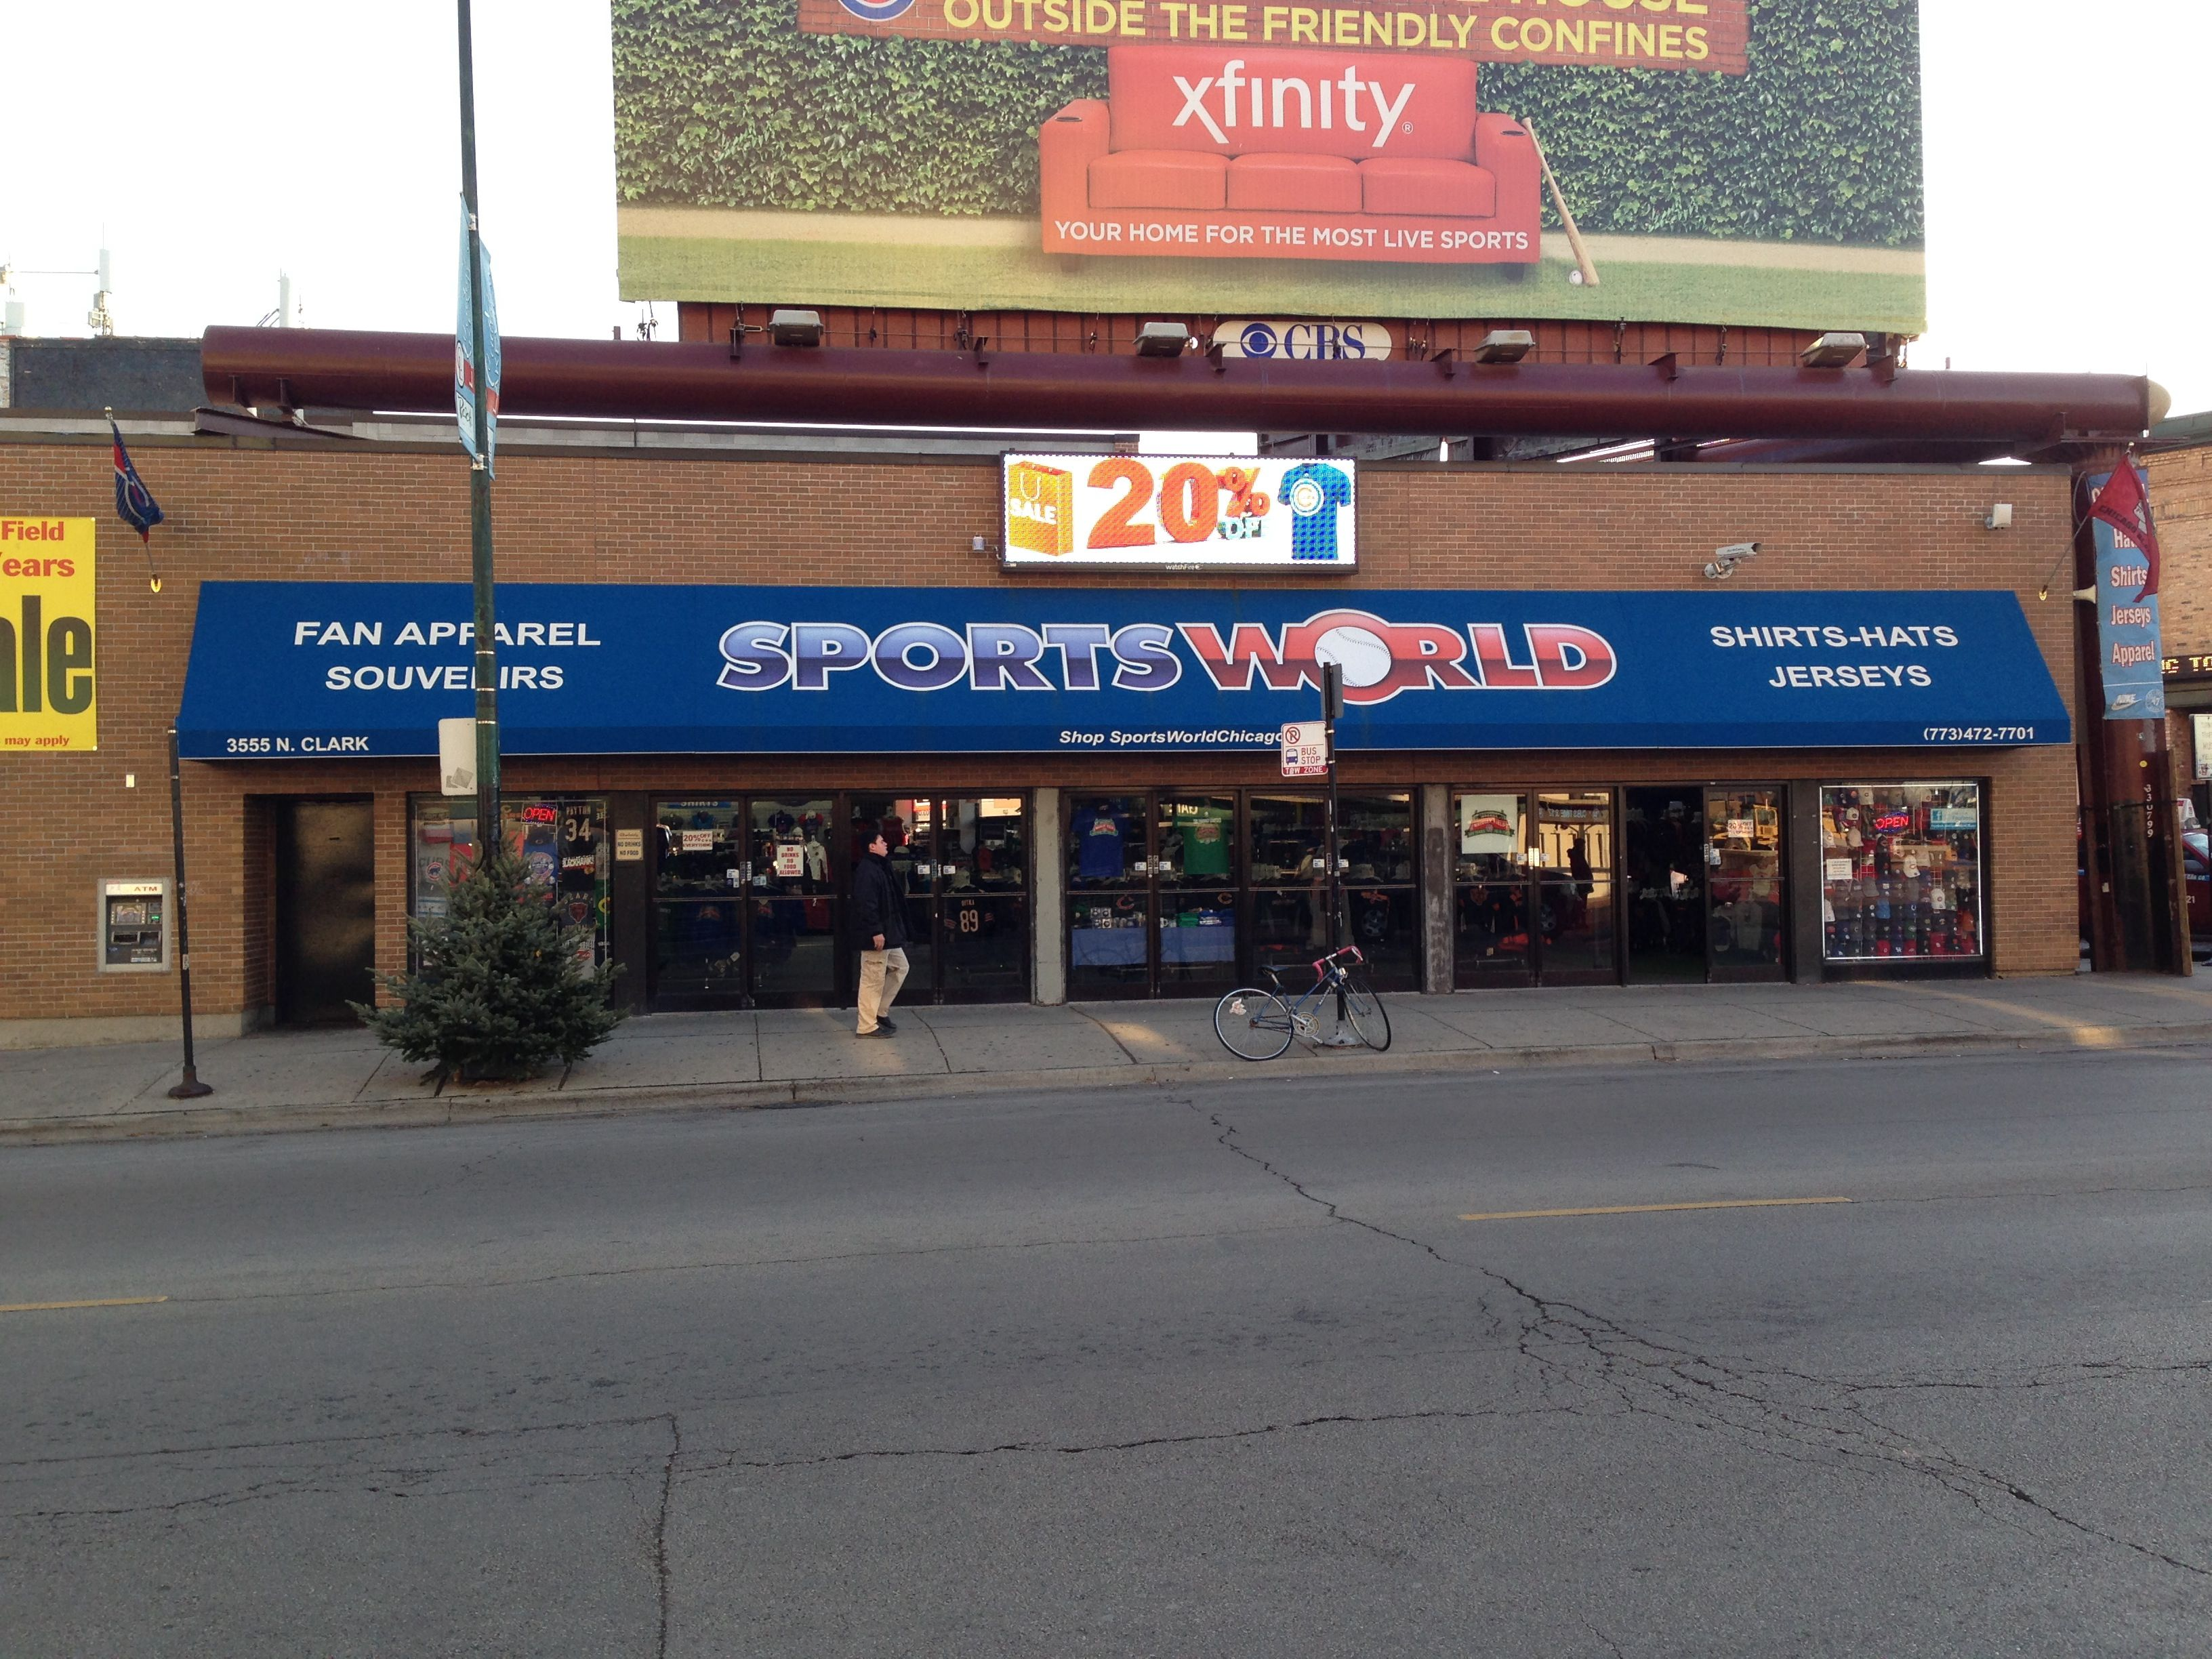 20 OFF in store Sale Today! Corner of Clark and Addison